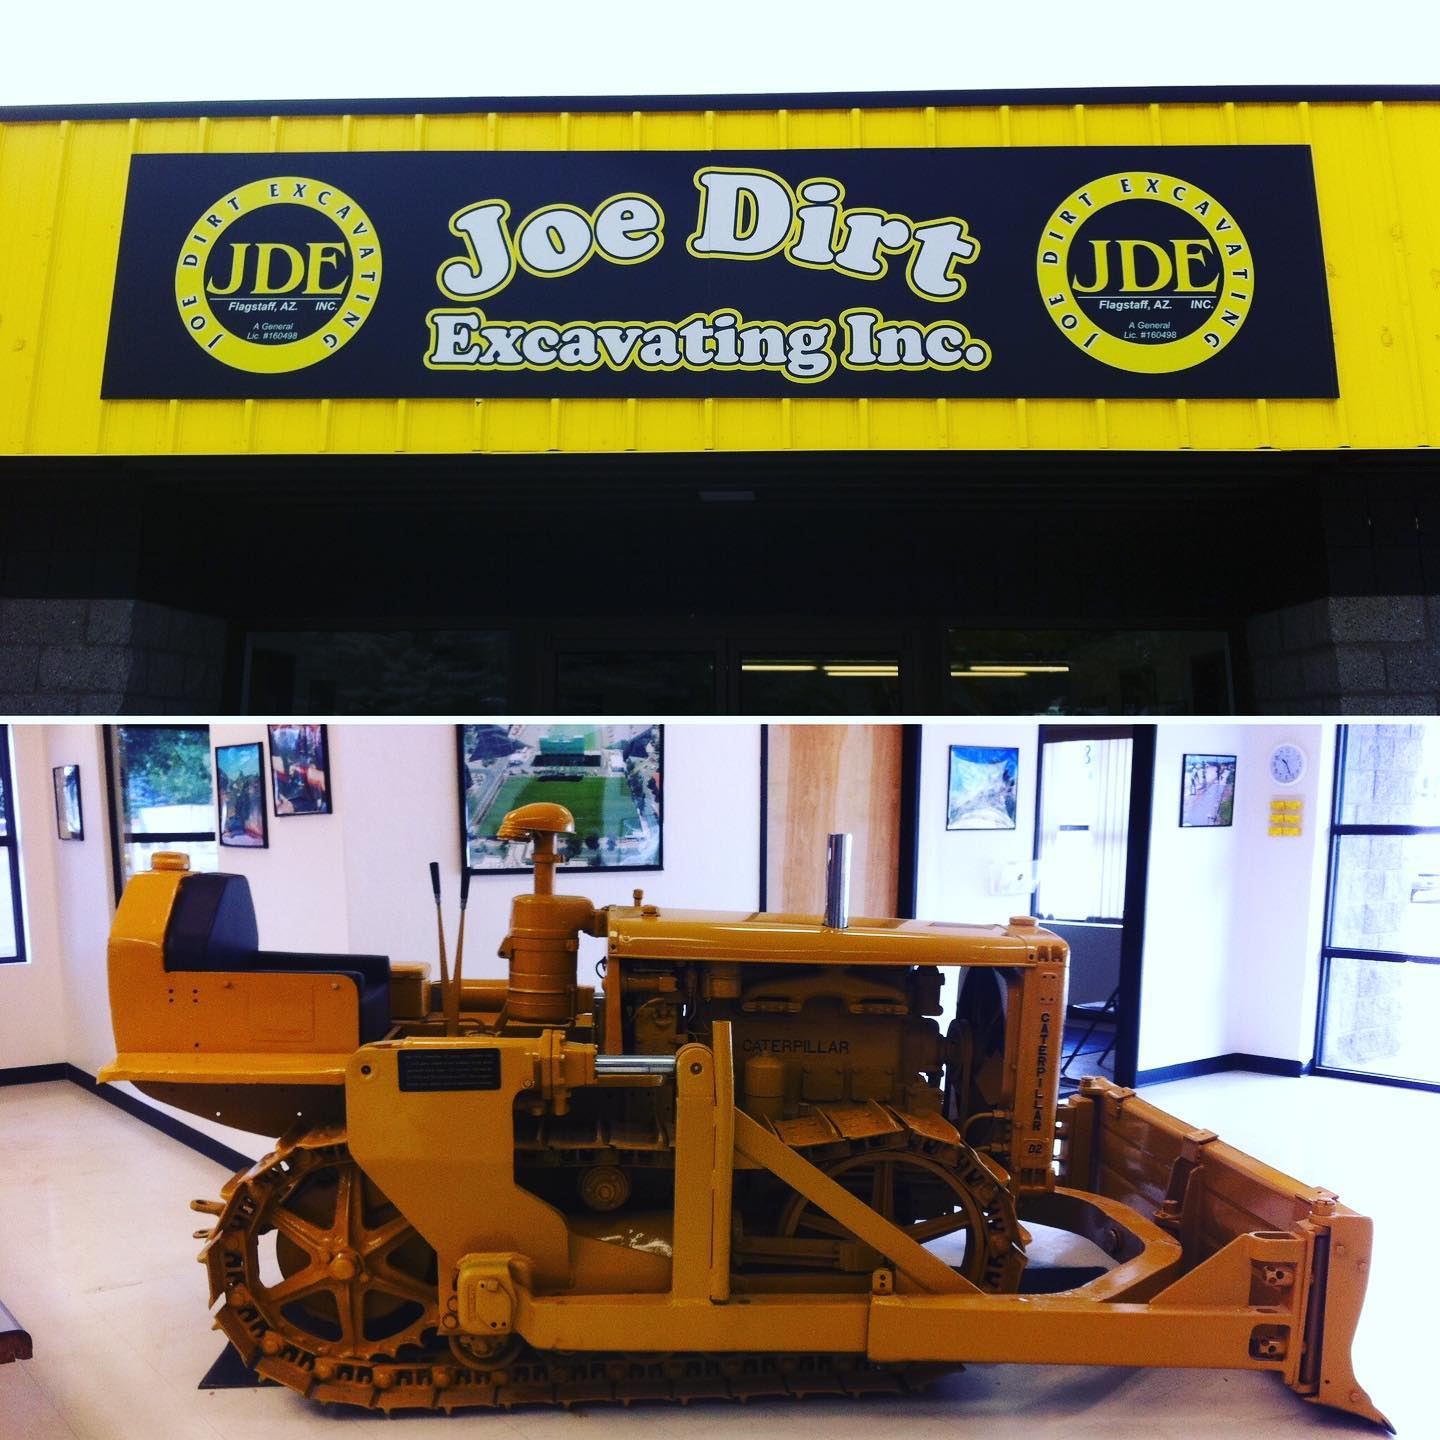 Always a pleasure working with the Joe Dirt Excavating in Flag